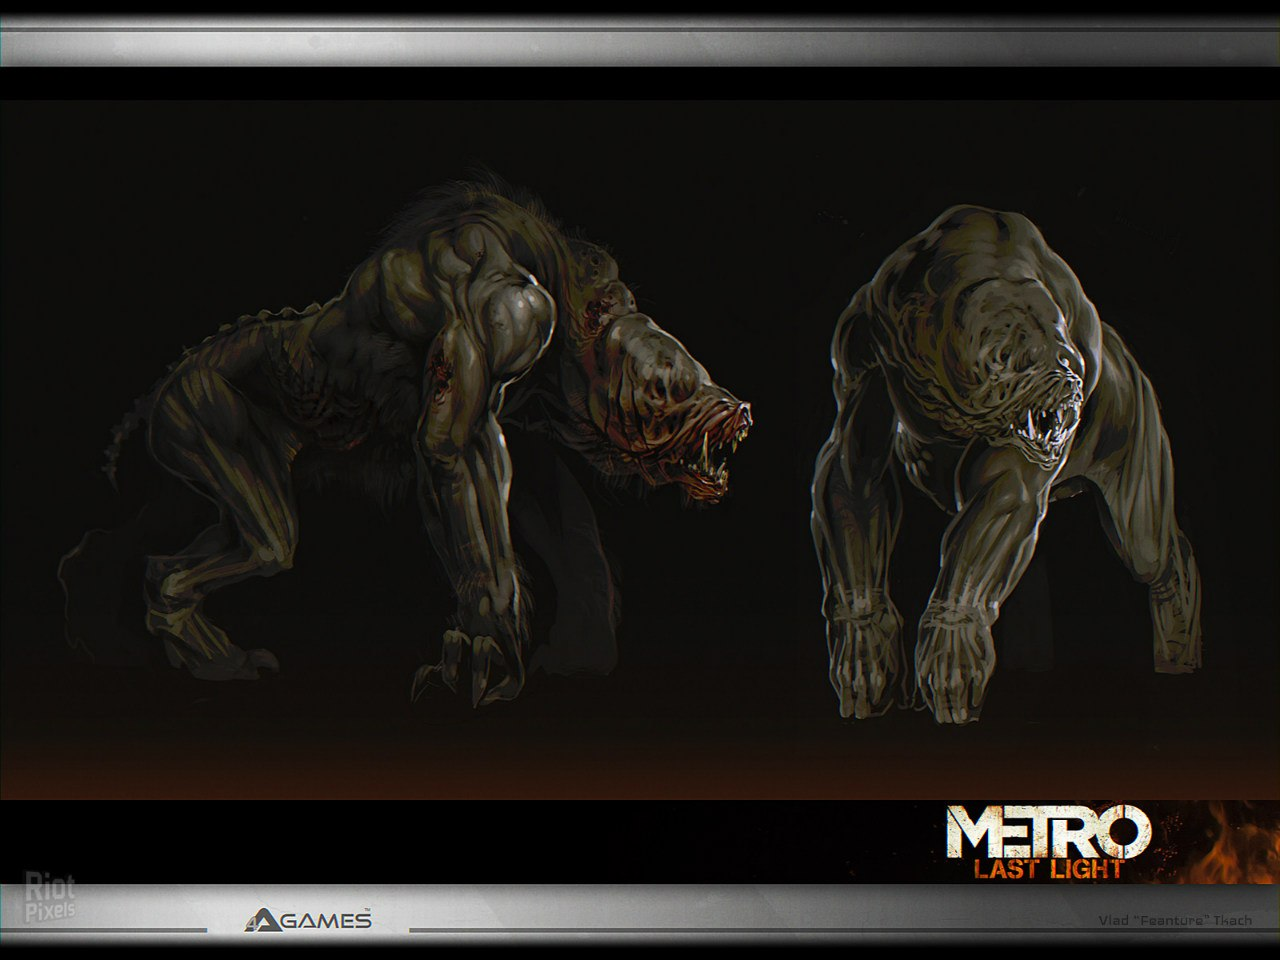 artwork.metro-last-light.1280x960.2013-06-22.117